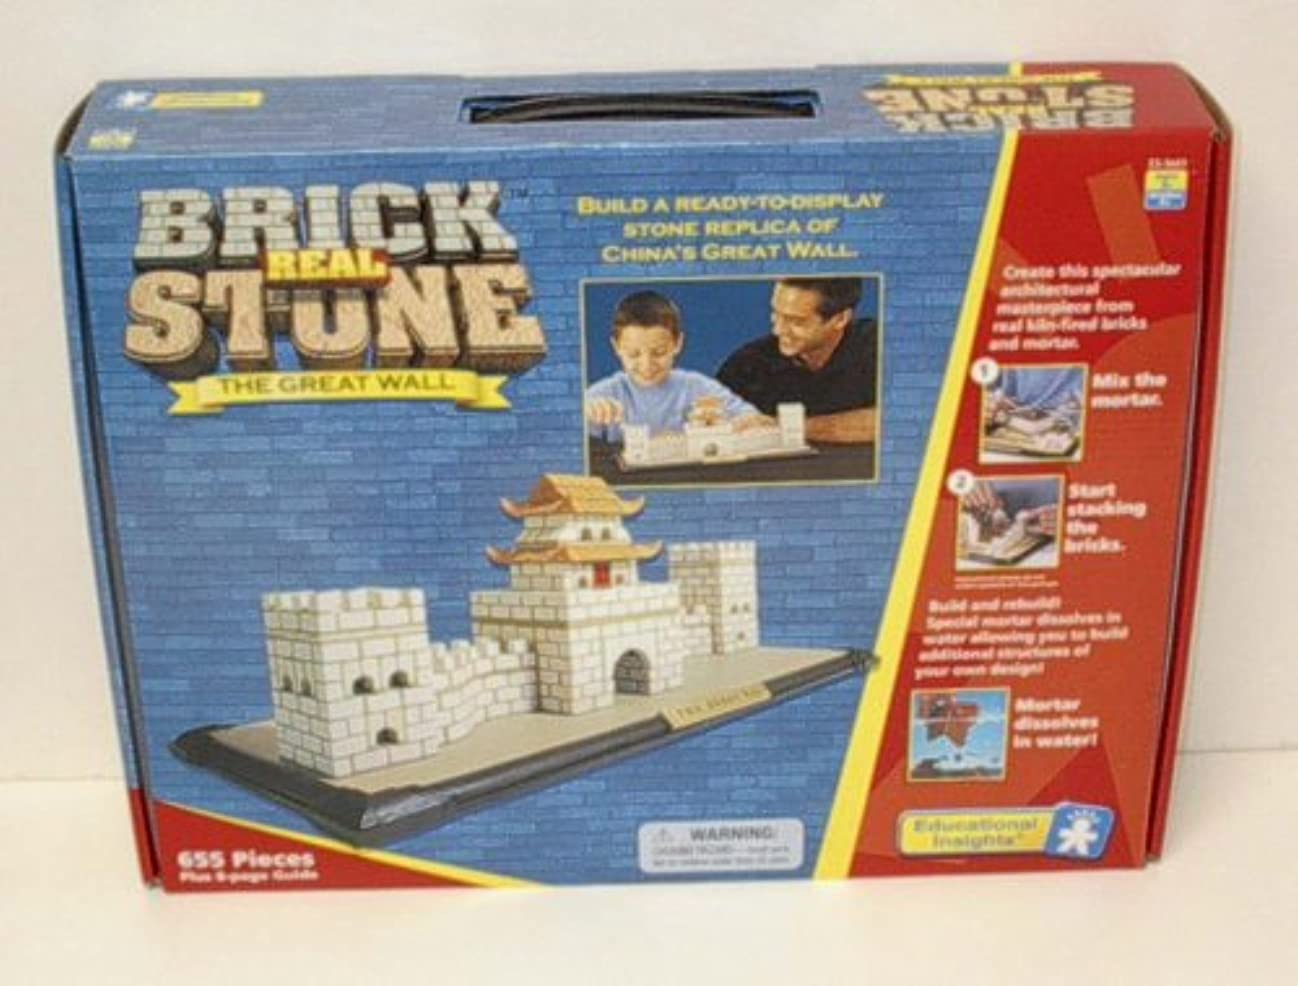 REAL BRICK STONE THE GREAT WALL Educational Insights